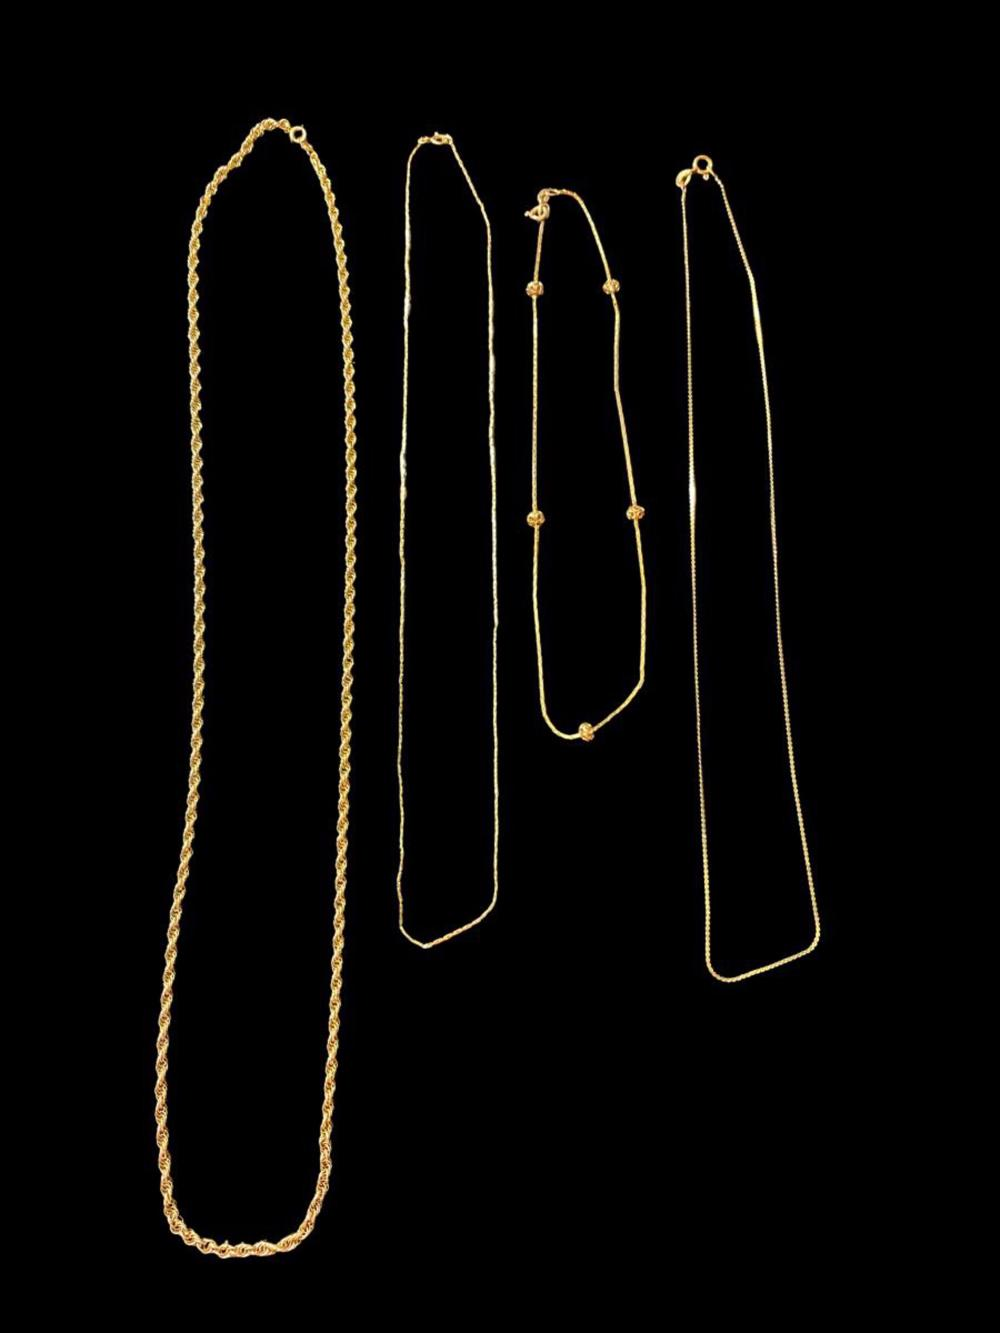 4pc 14K Gold Chains